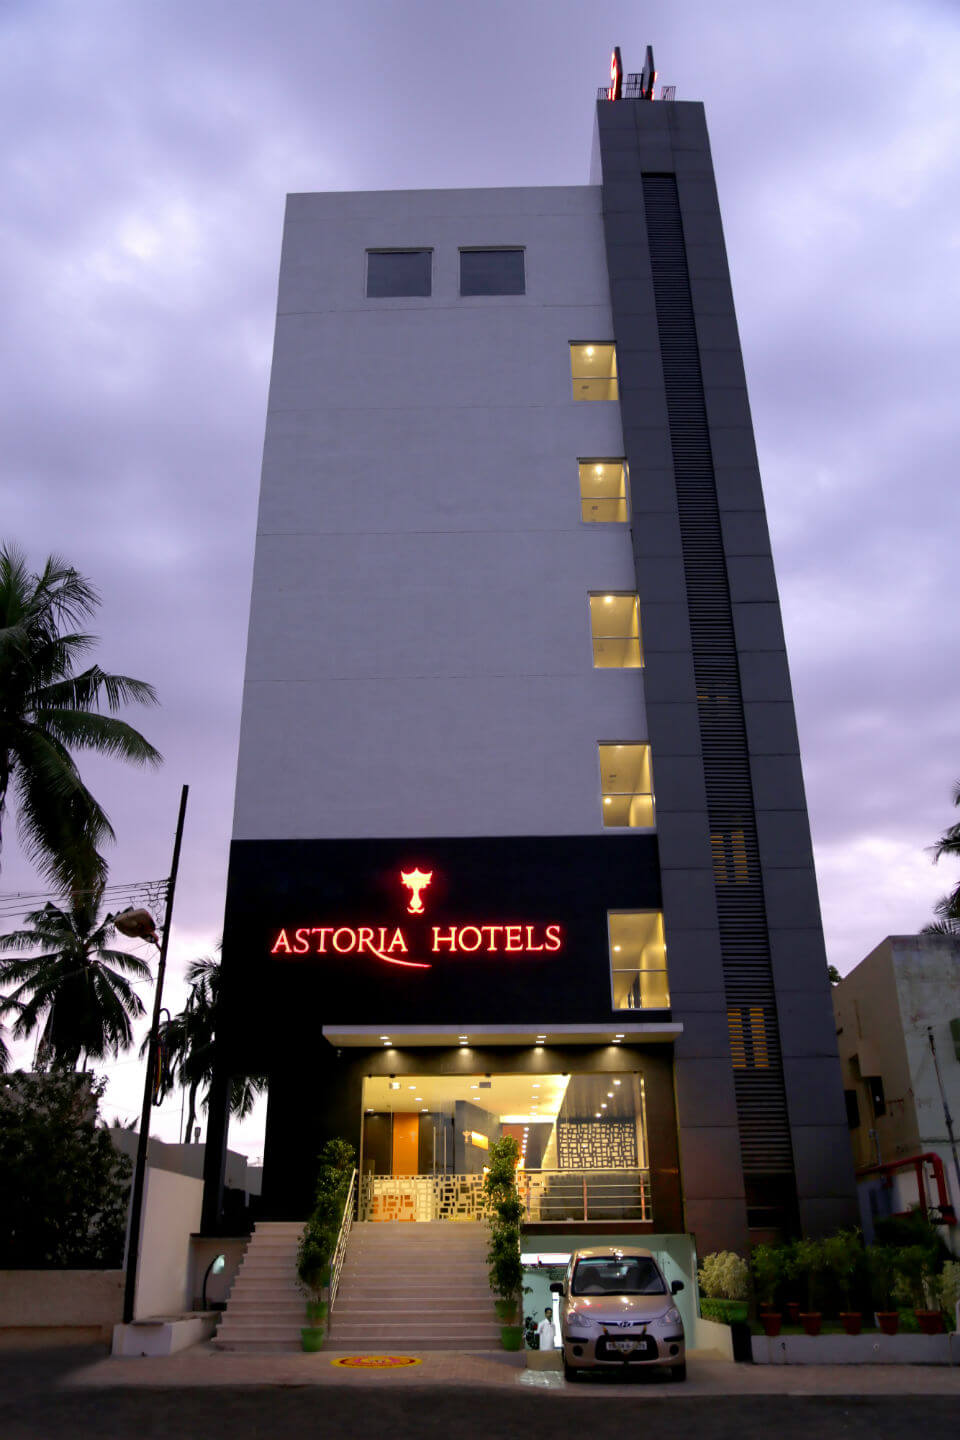 Astoria hotels service